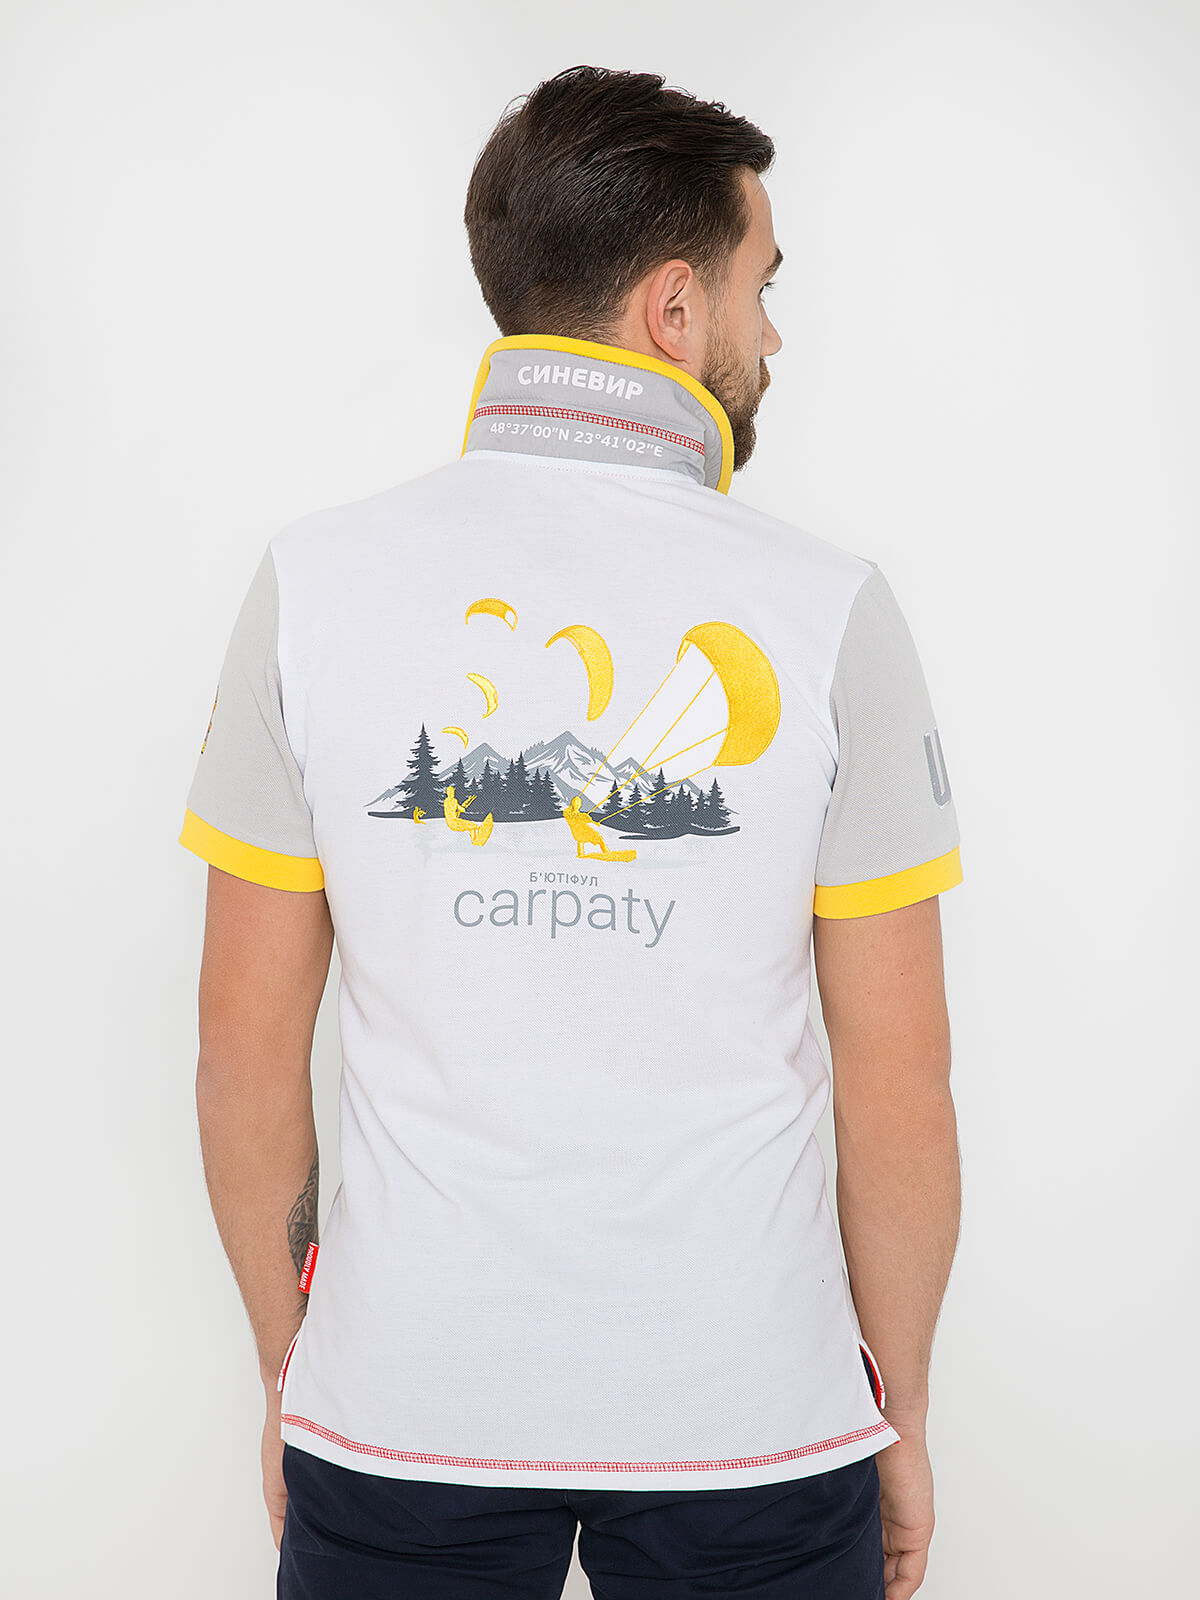 Men's Polo Shirt Synevyr. Color white.  Technique of prints applied: embroidery, silkscreen printing.